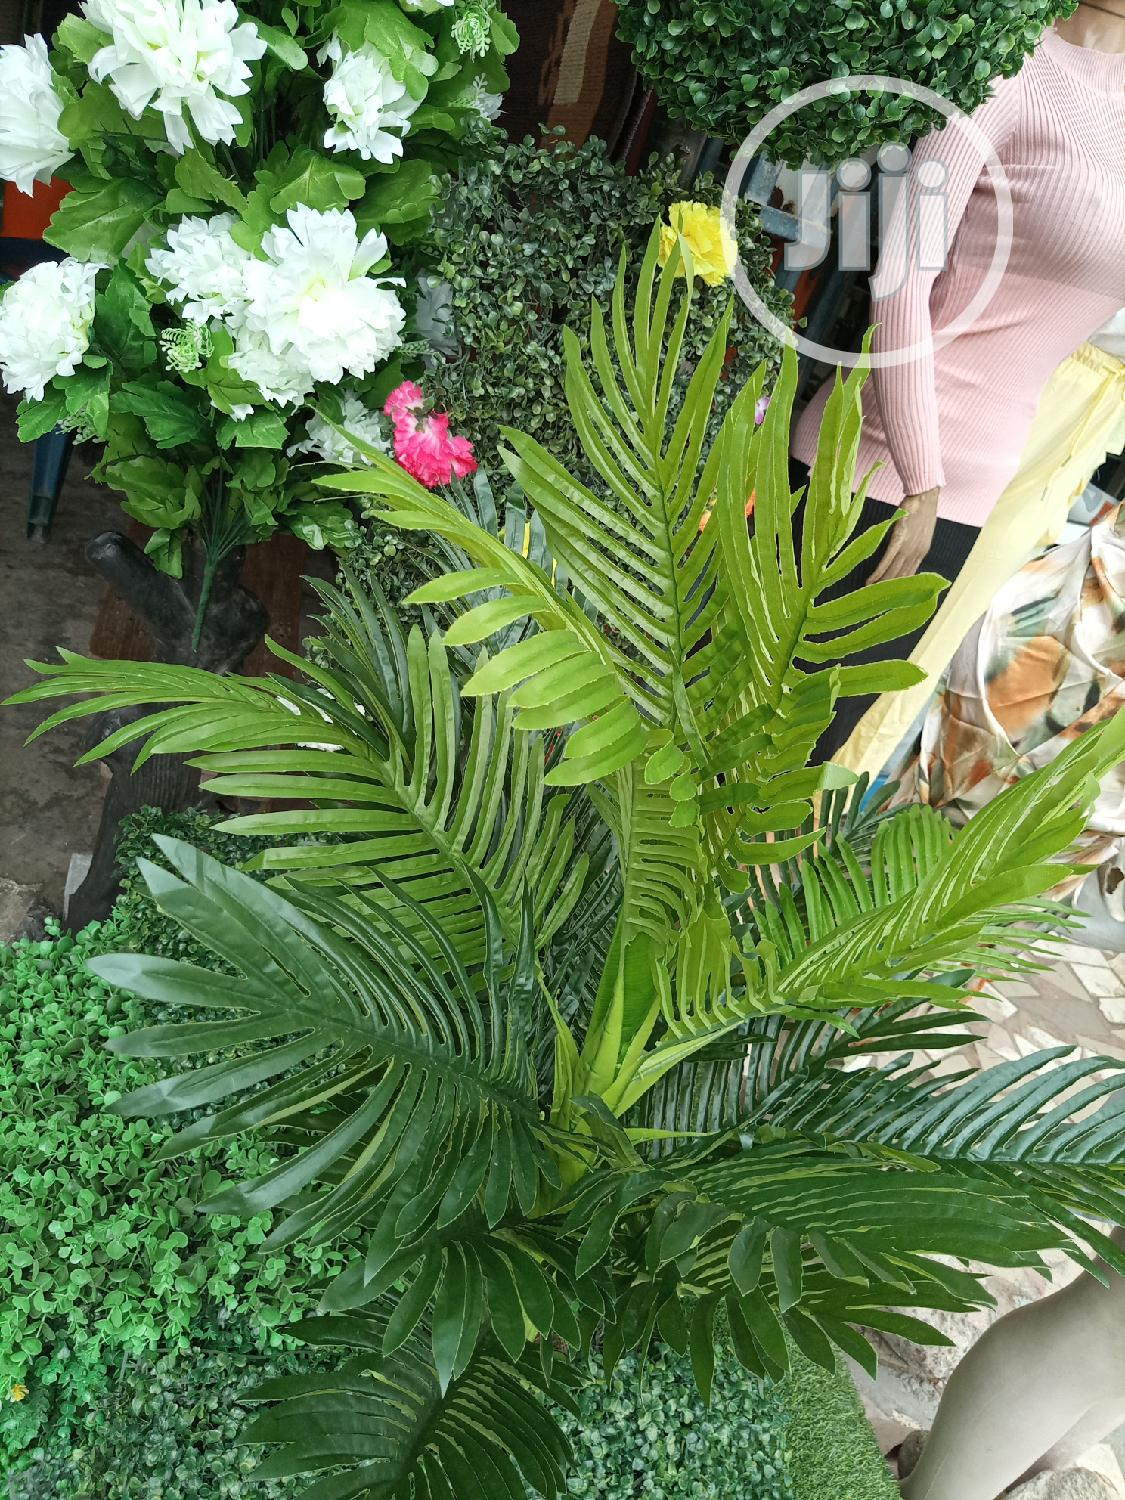 Beautify Your Houses With Quality Plans Tree | Garden for sale in Surulere, Lagos State, Nigeria